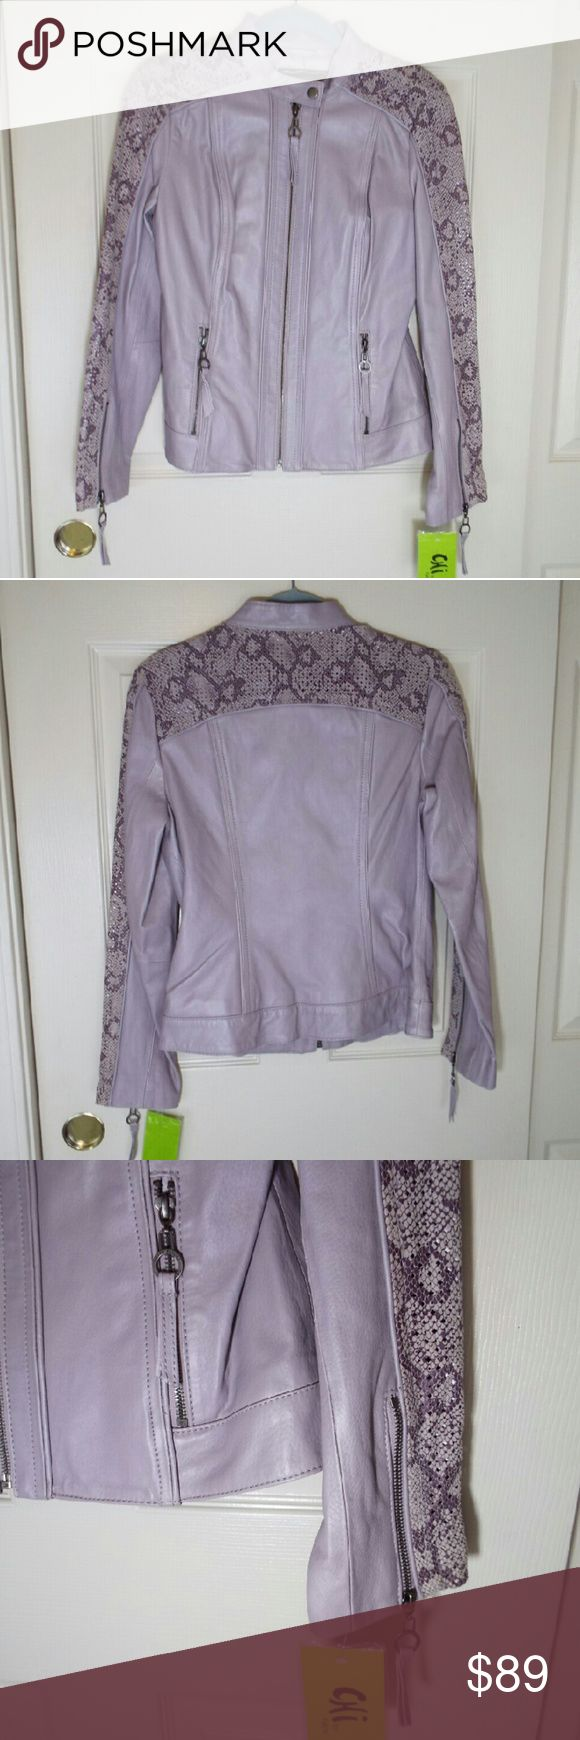 Chi by Falchi leather jacket in color light purple Chi by Falchion leather jacket in color light purple, leather Python print, in perfect condition, unworn, with a tag CHi by FALCHI Jackets & Coats